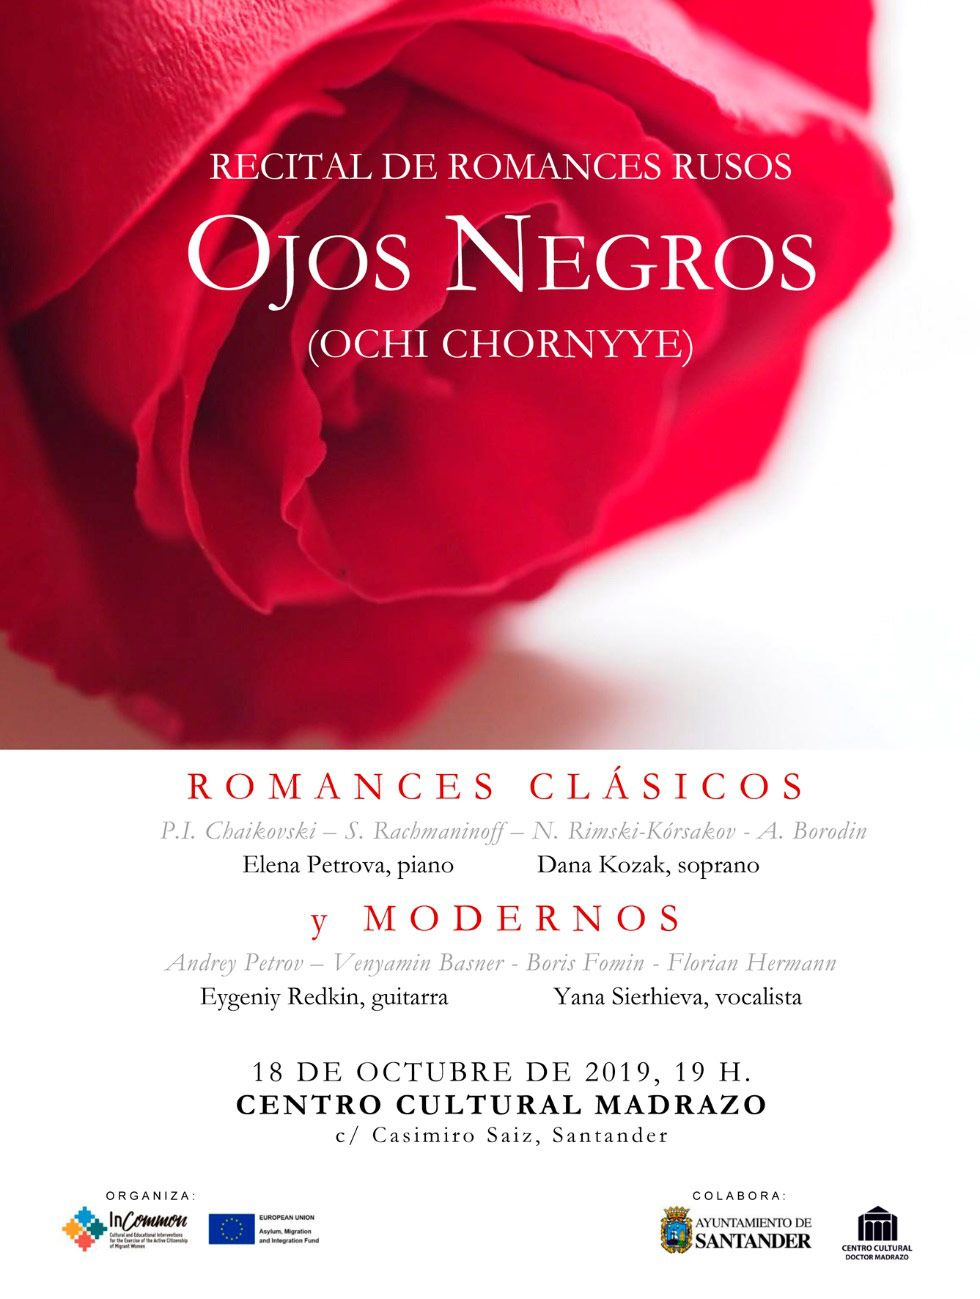 OJOS NEGROS, CLASSICAL AND CONTEMPORARY RUSSIAN ROMANCES